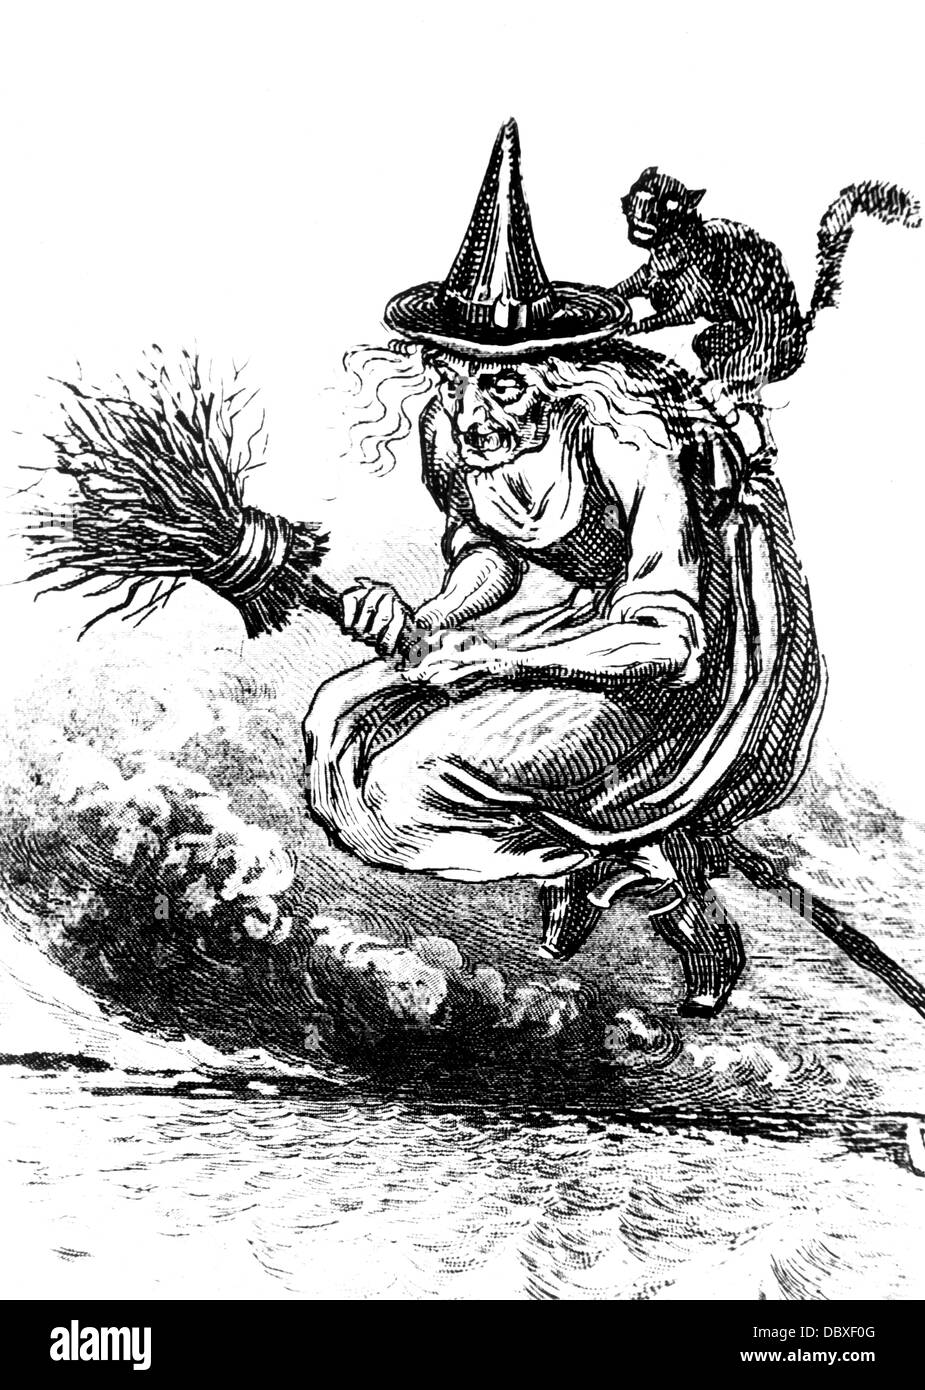 ENGRAVING OF UGLY OLD WITCH RIDING BROOM WITH A BLACK CAT ON HER BACK - Stock Image